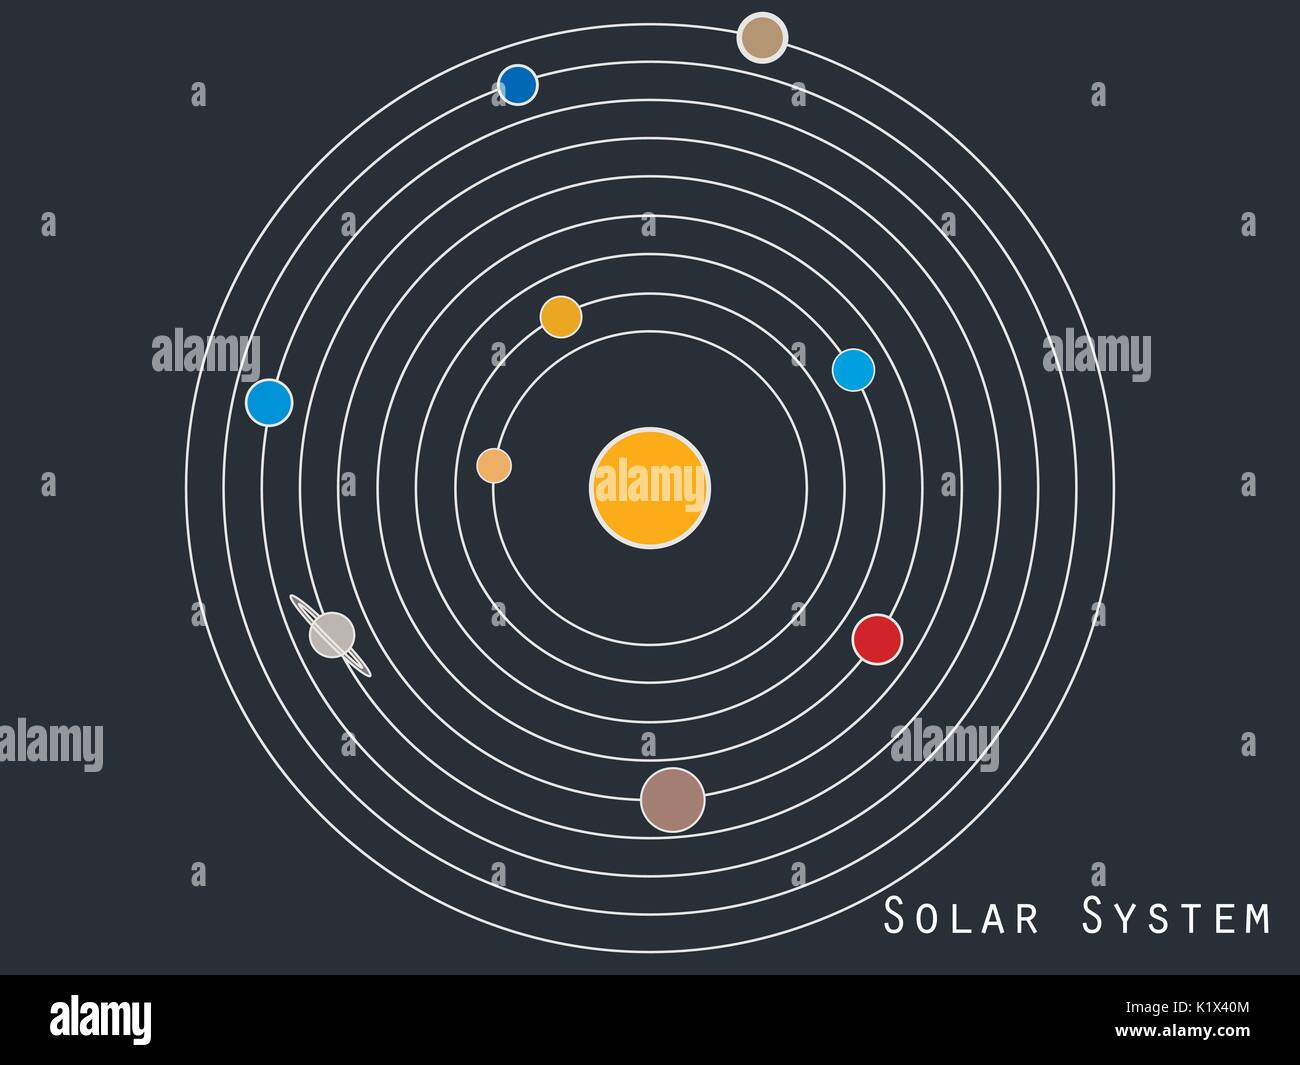 Solar System Planets Stock Photos Amp Solar System Planets